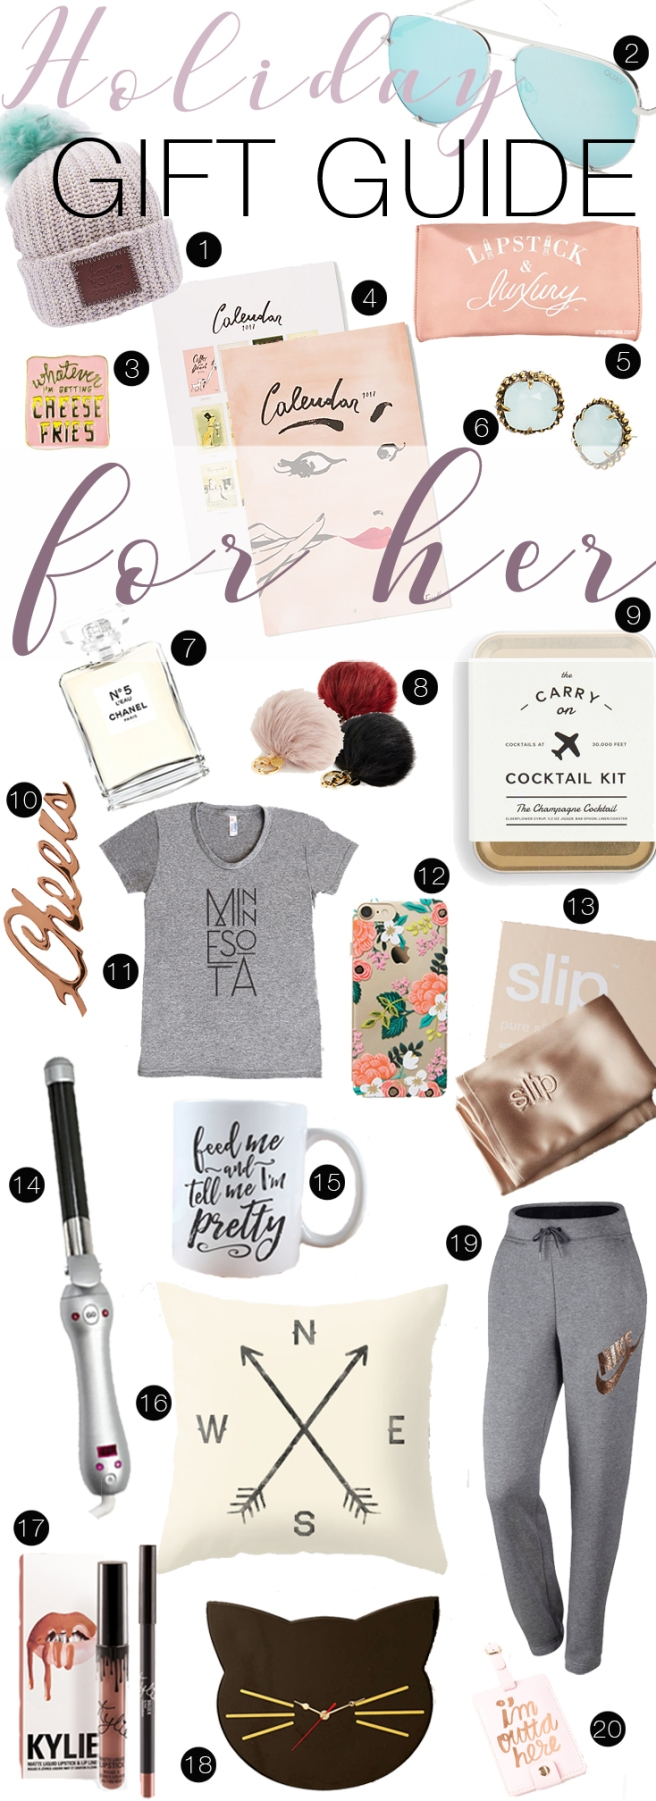 Holiday Gift guide for her collage